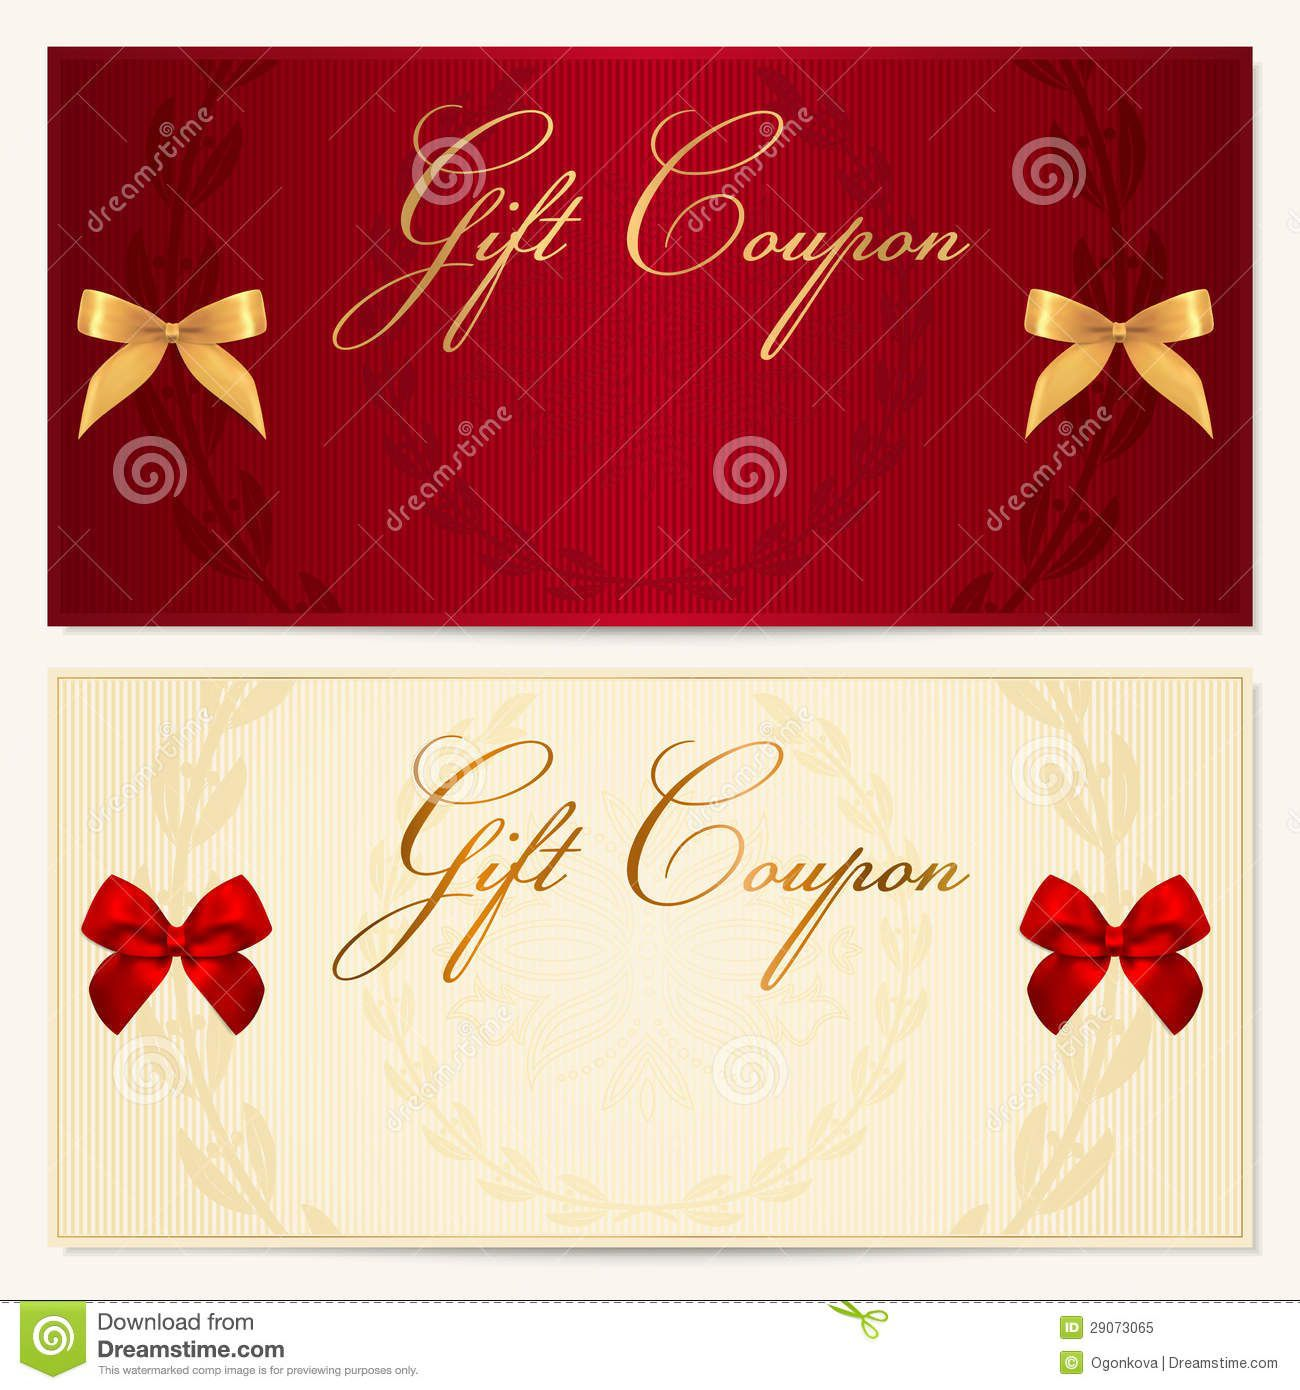 007 Formidable Free Printable Christma Gift Voucher Template Photo  Templates Holiday CertificateFull